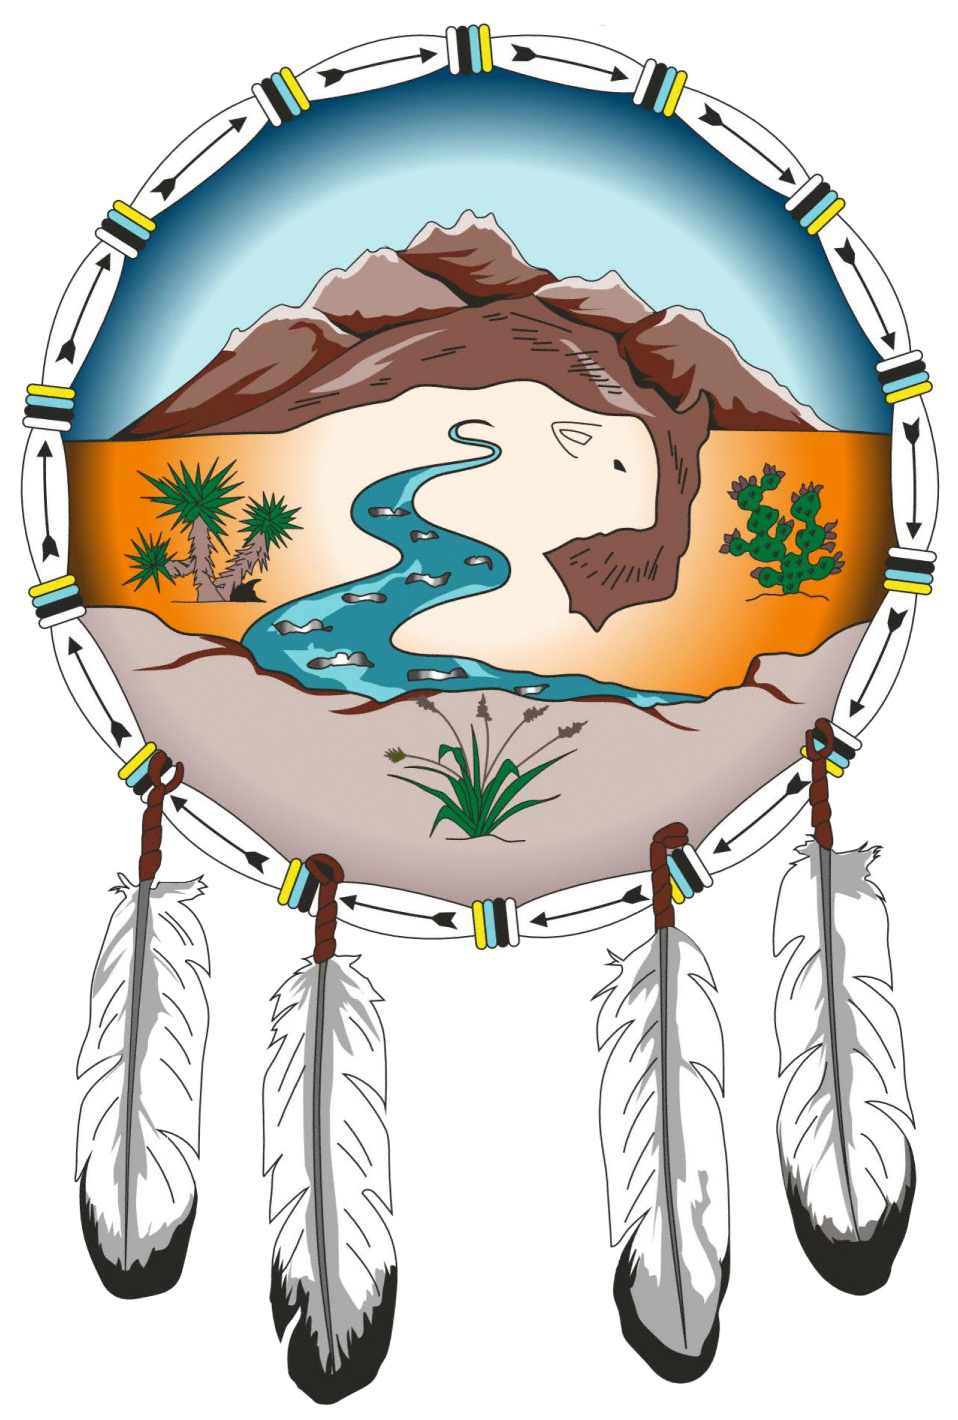 Schedule clipart marked. Lipan apache tribe of